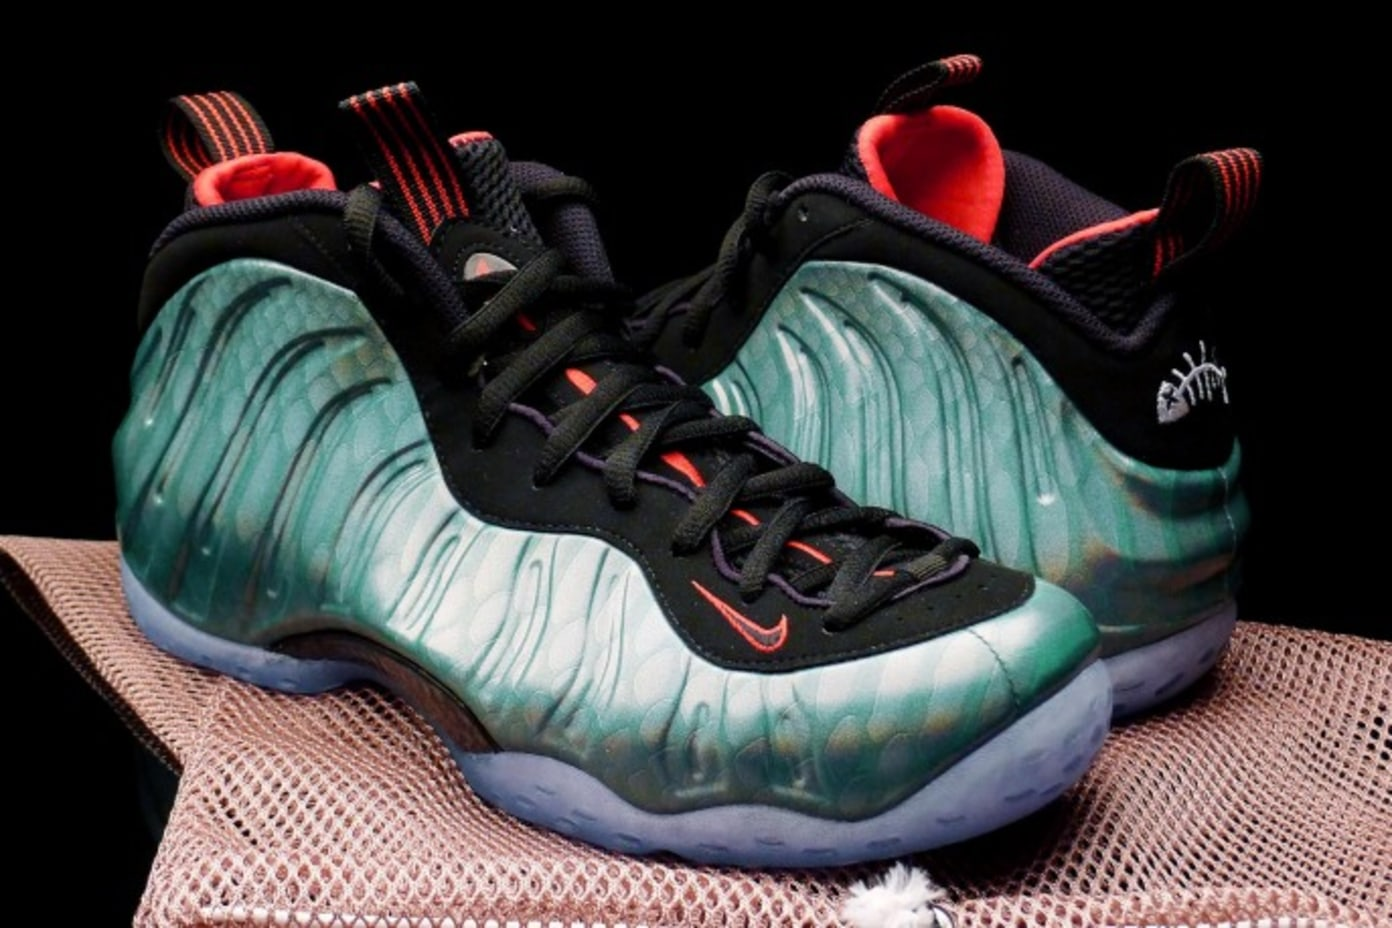 Nike Air Foamposite One Stealth? Japan Release Date SBD